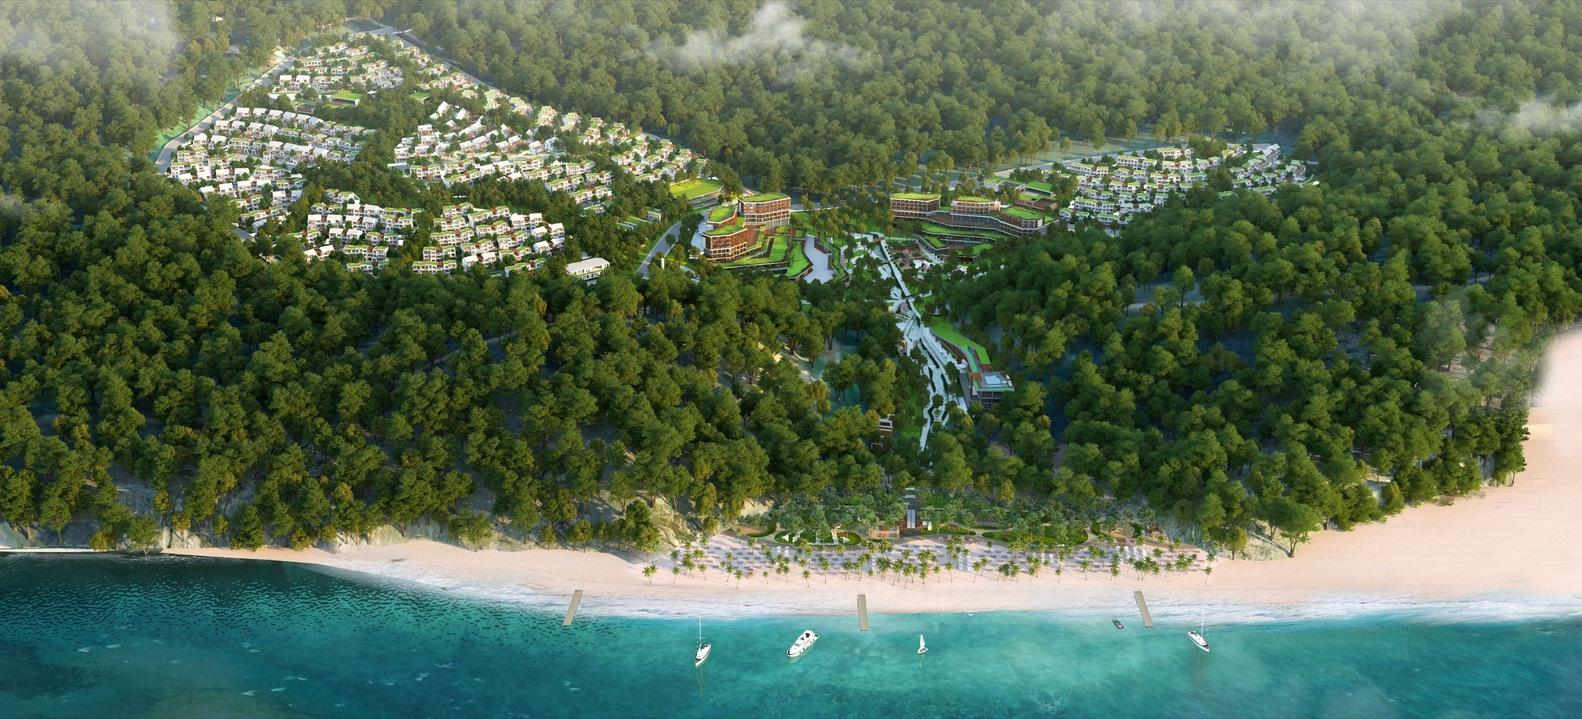 The resort is situated on around 330,000sq m of hilly land with a view to the sea, and has been created with a focus on nature and numerous green belts throughout / Project Design Group